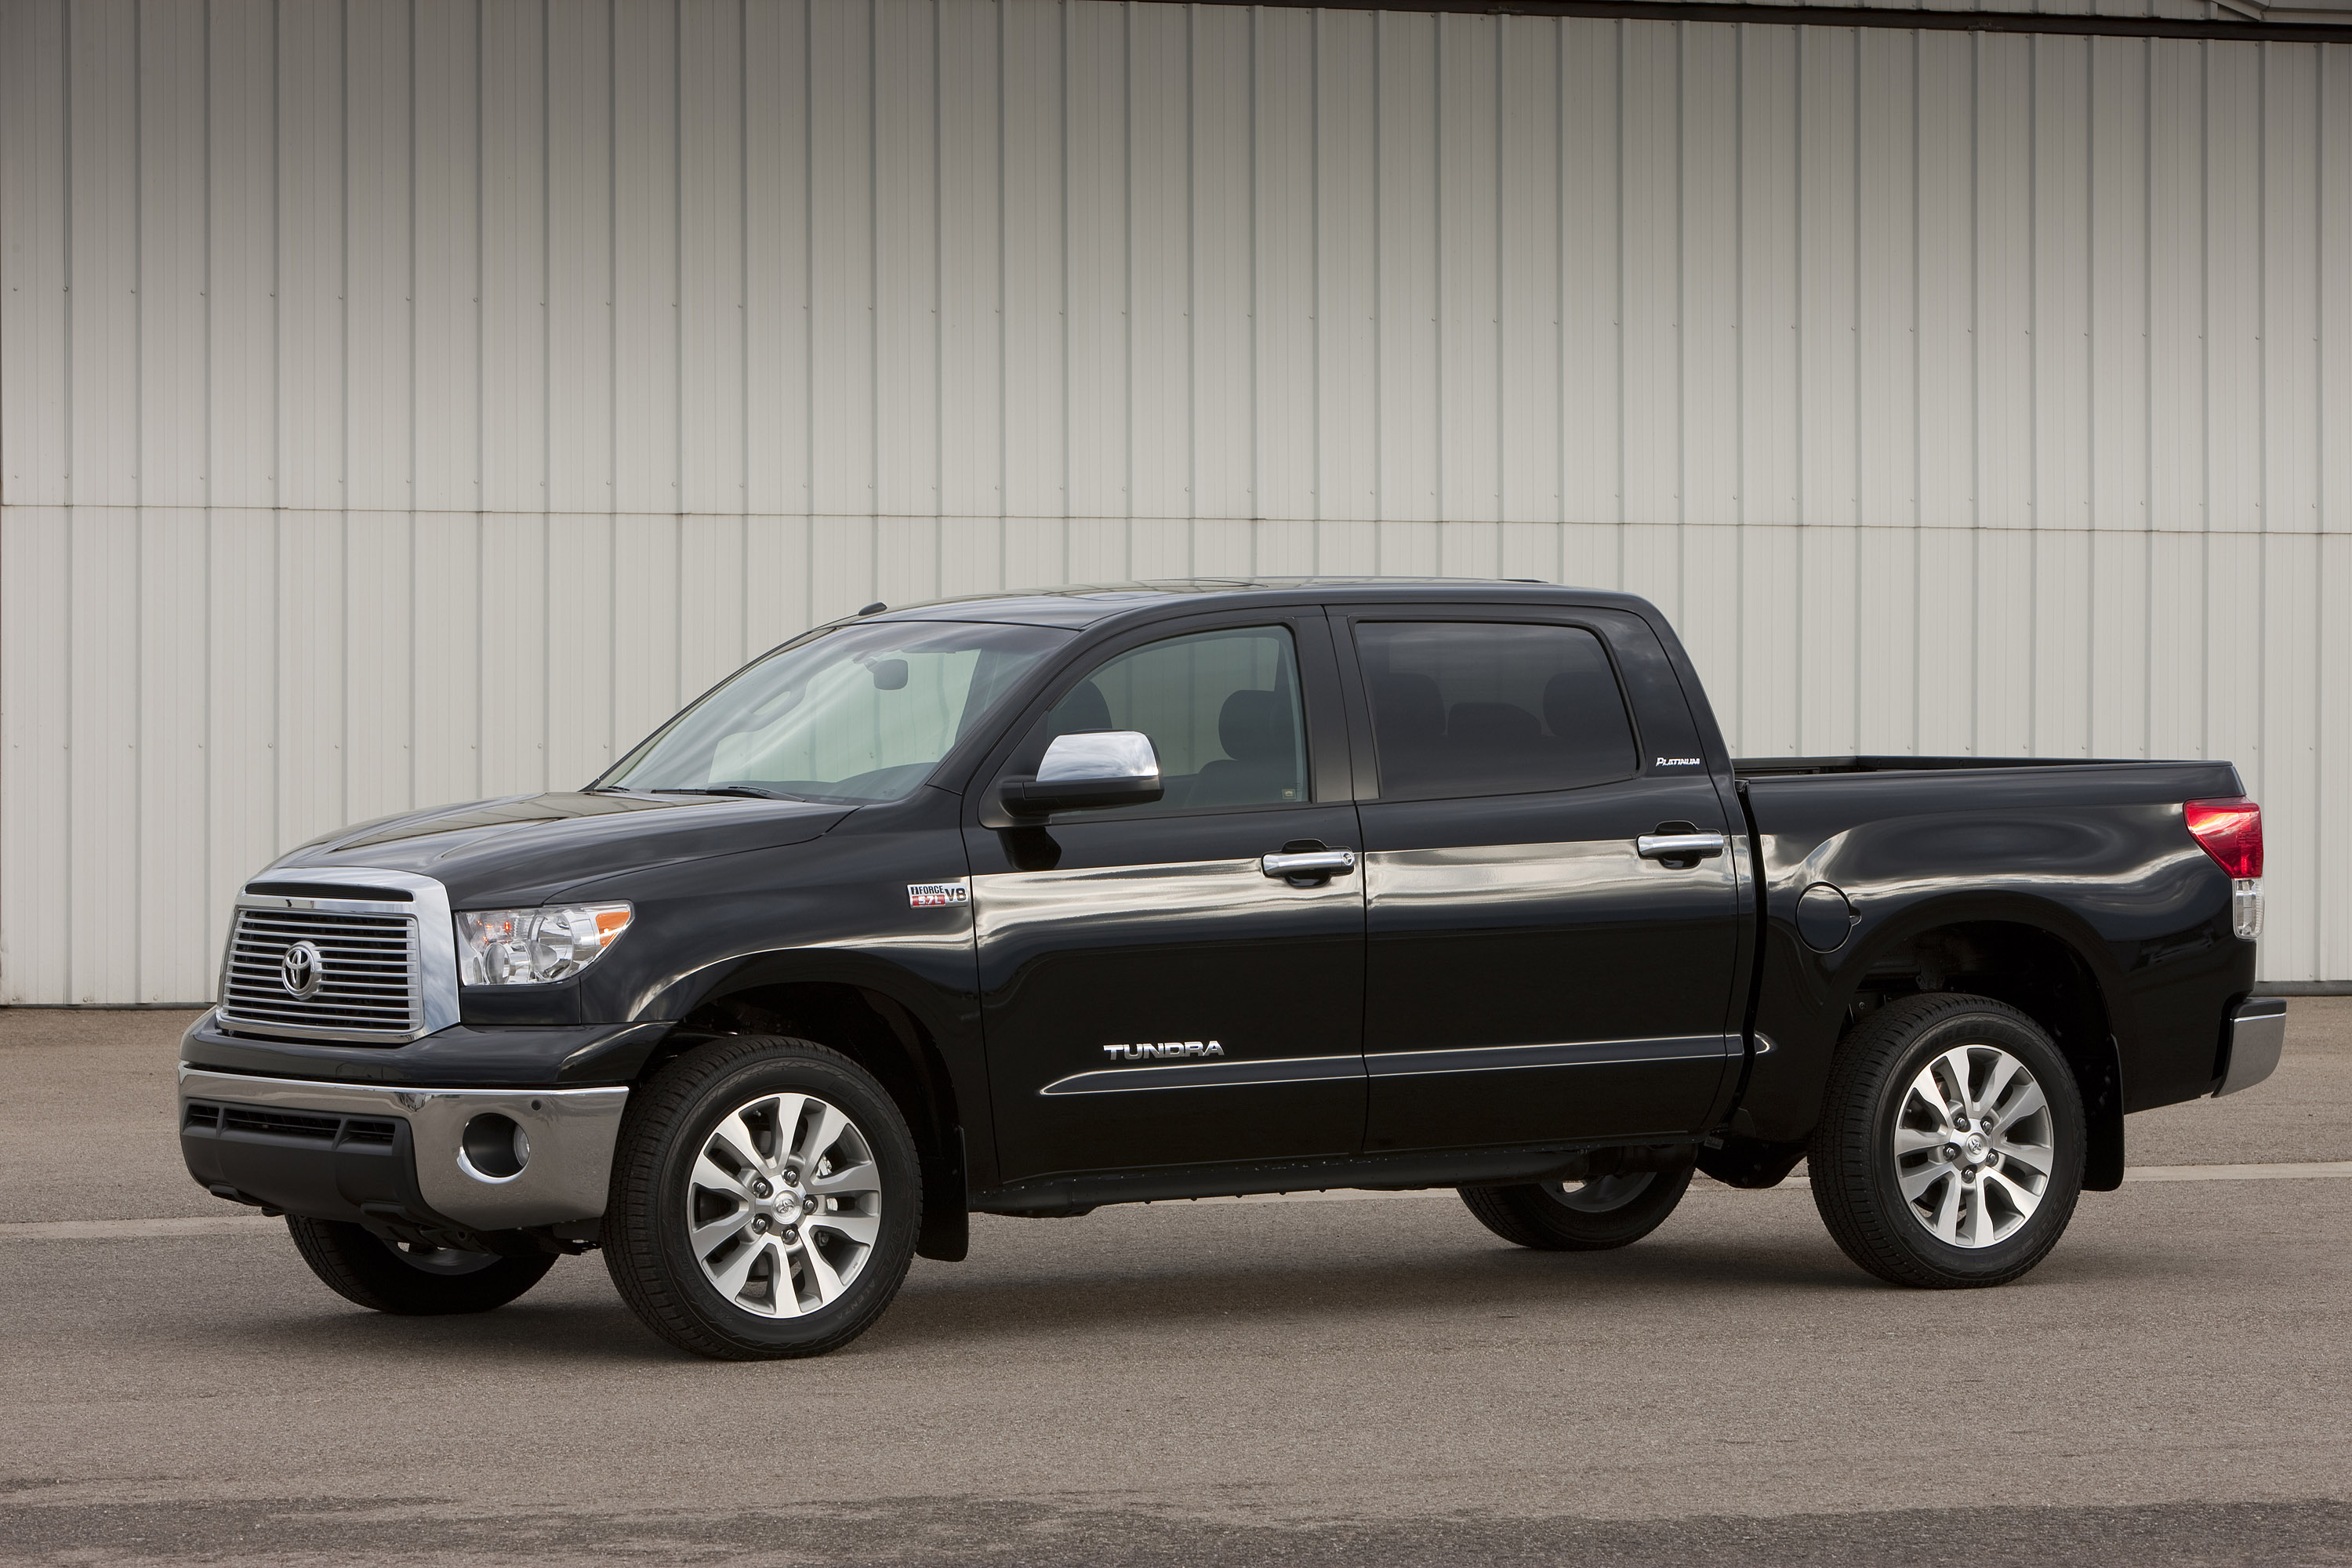 Toyota Tundra 2010 photo - 3